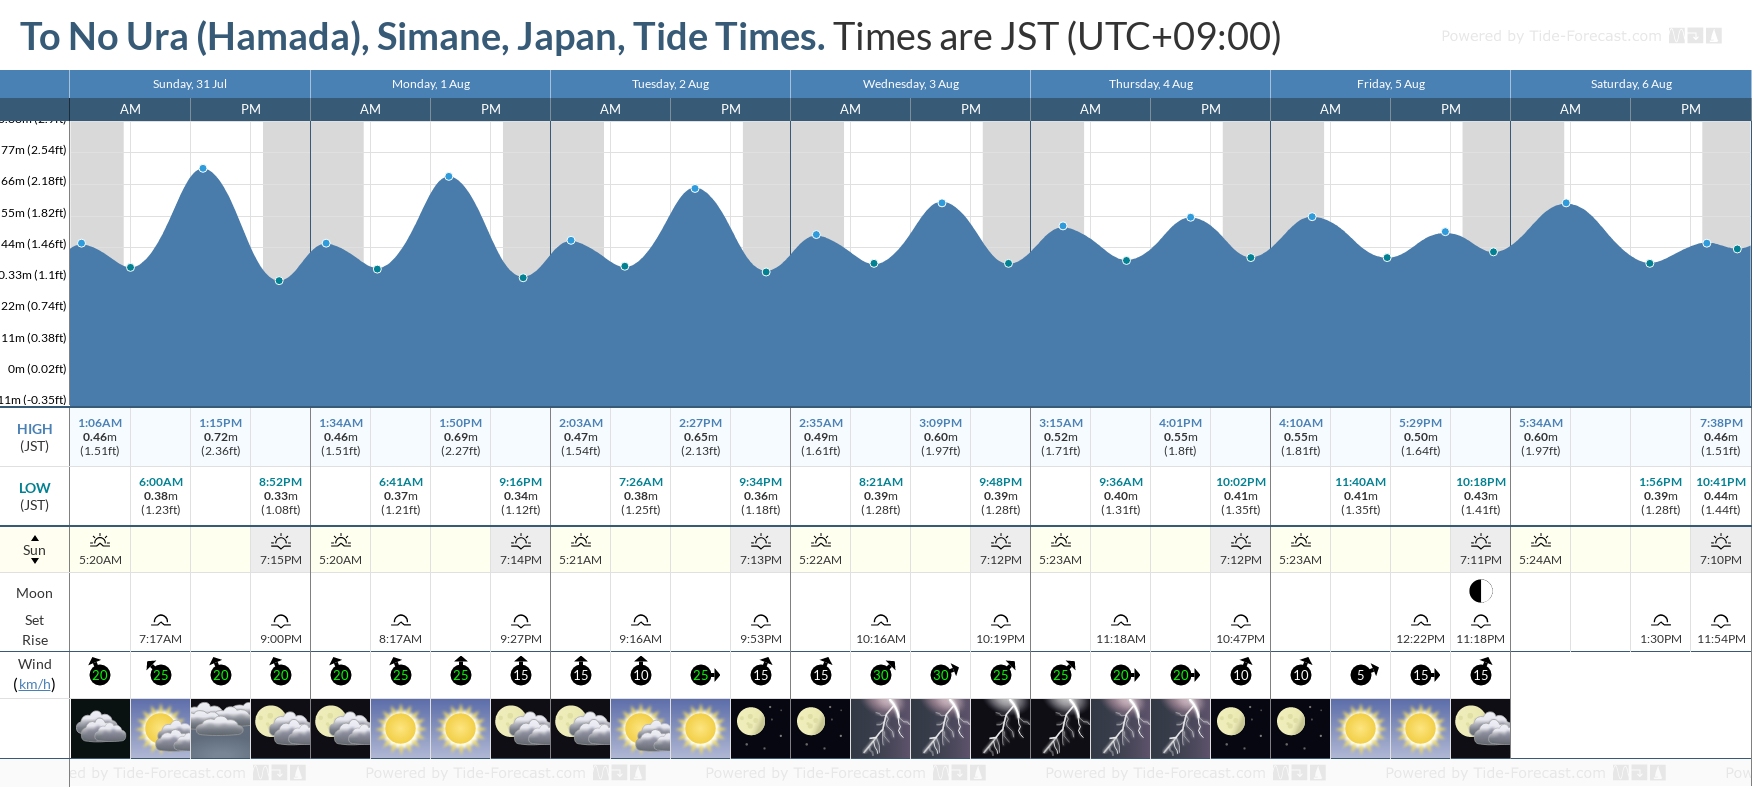 To No Ura (Hamada), Simane, Japan Tide Chart including high and low tide tide times for the next 7 days